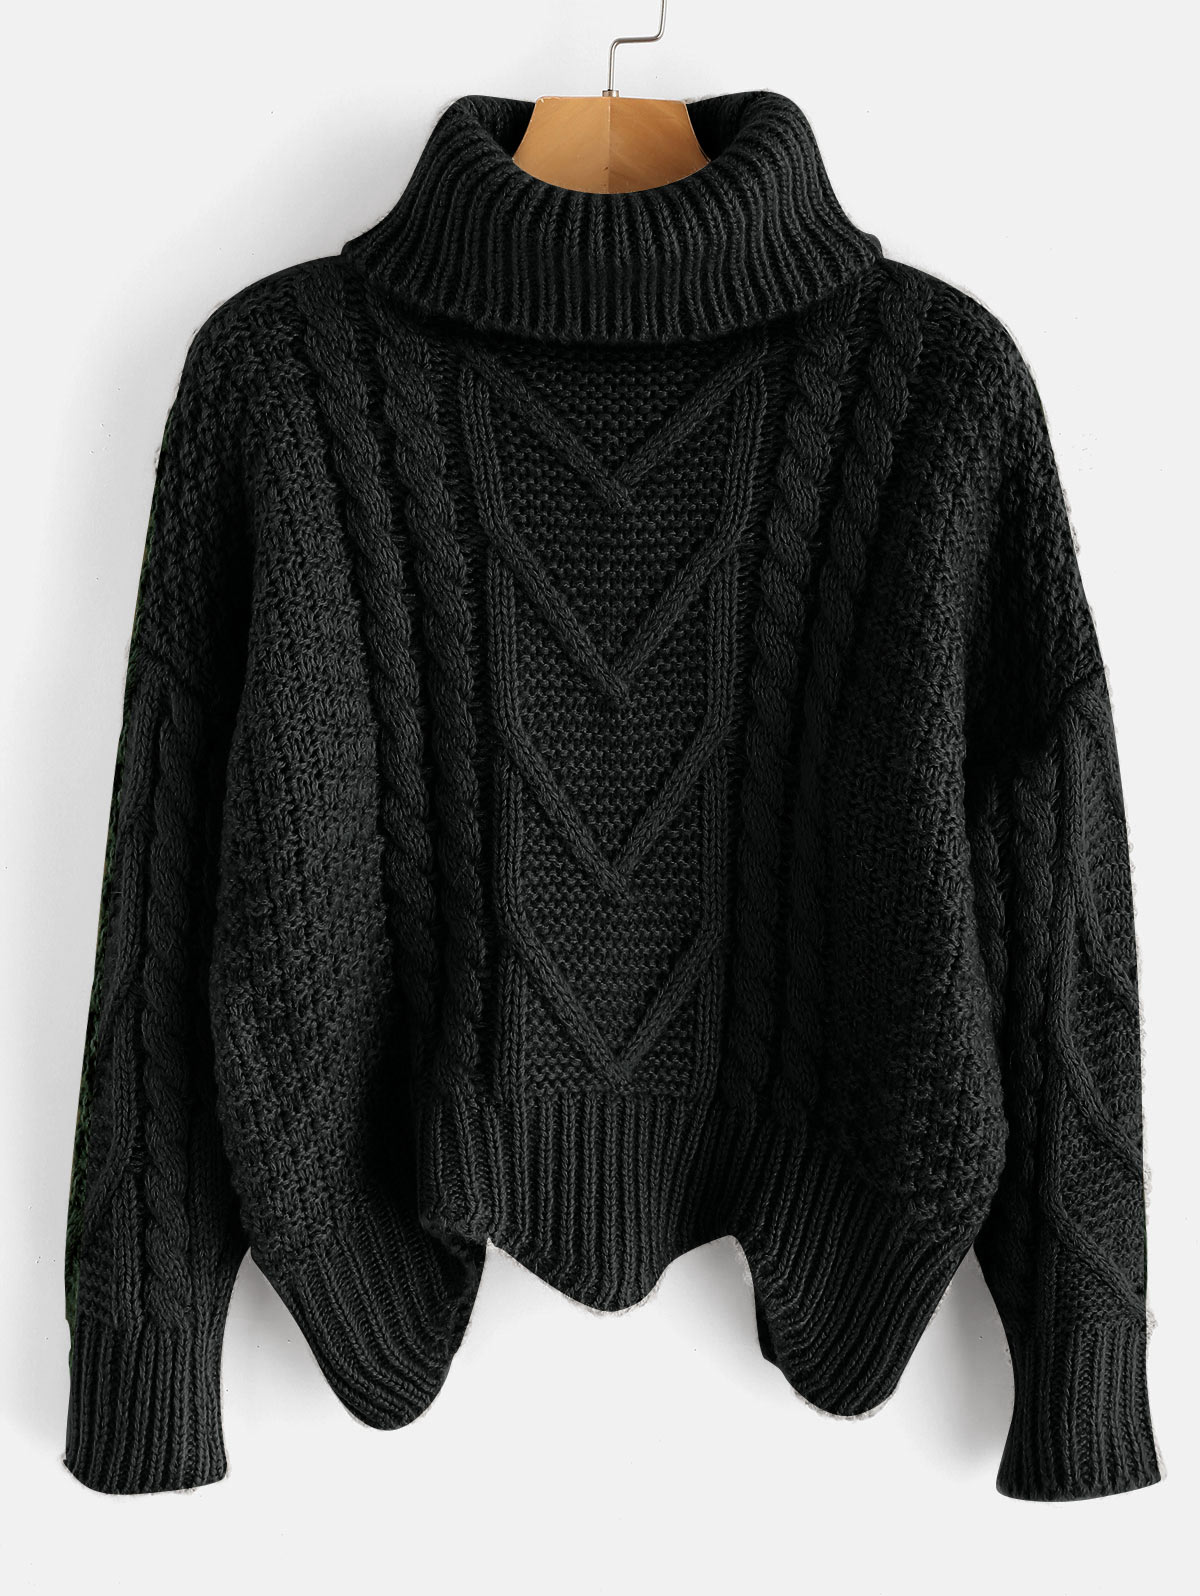 ZAFUL Turtleneck Cable Knit Pullover Sweater Plain Zigzag Hem Loose Type Sweater Casual Women Drop Shoulder Nonelastic Sweater